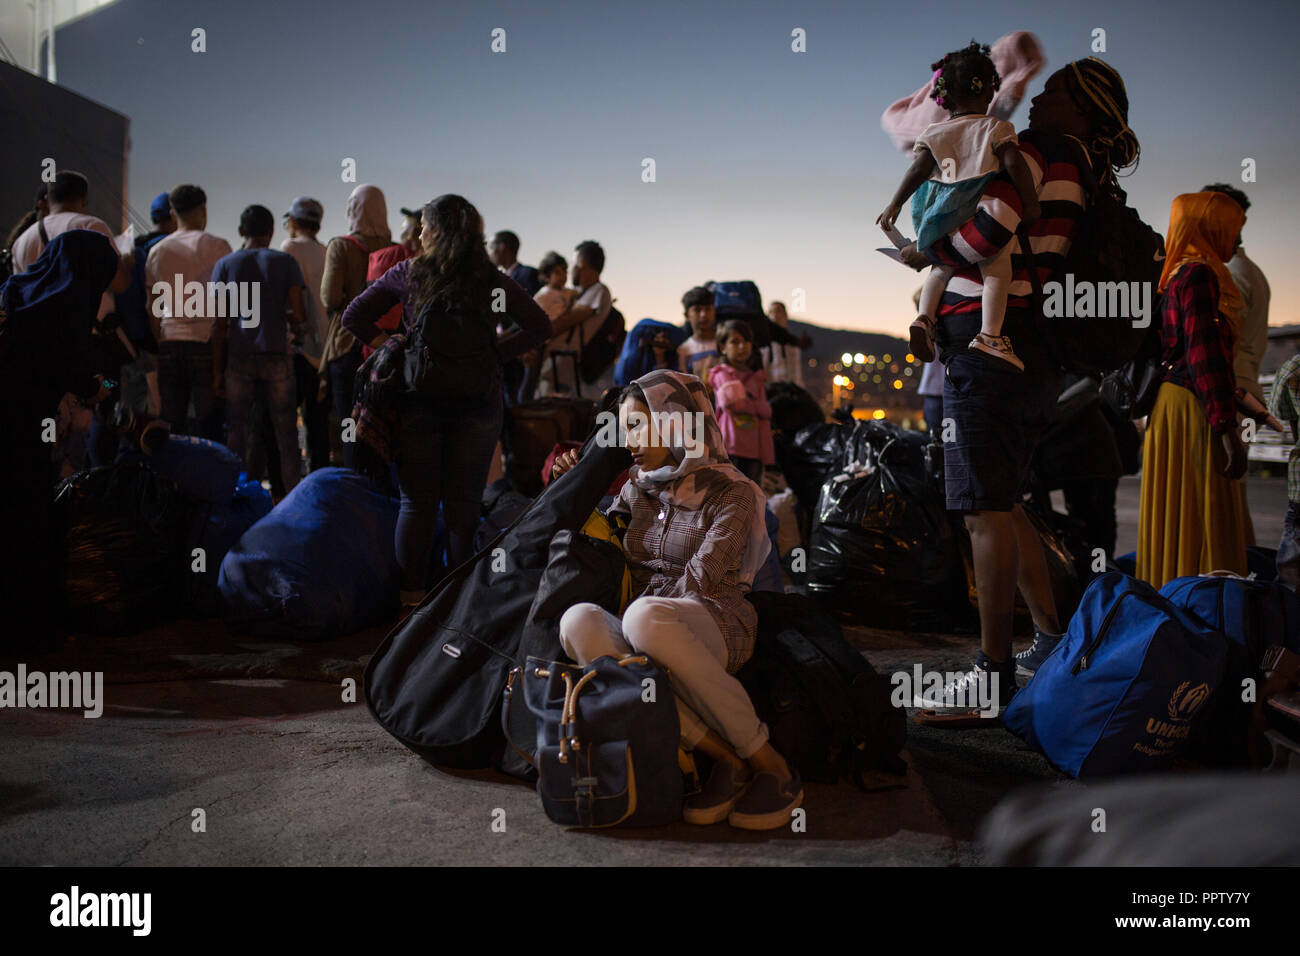 Moira, Greece. 24th Sep, 2018. An asylum seeker is waiting for a ferry from the port of Mitilini to Athens. Credit: Socrates Baltagiannis/dpa/Alamy Live News - Stock Image